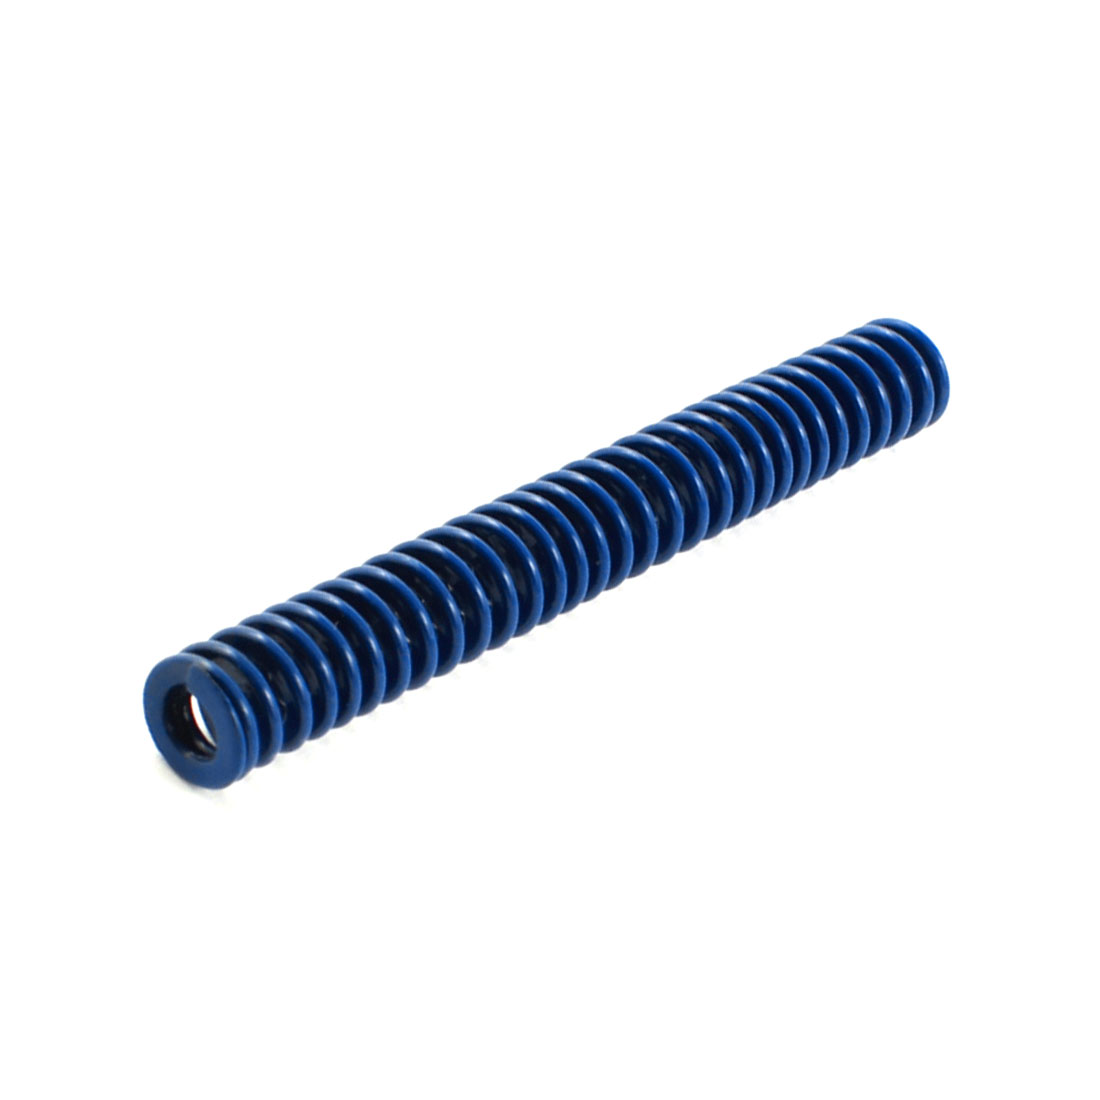 Plastic Injection Mold Die Light Load Spiral Stamping Compression Spring Blue 8mm x 65mm